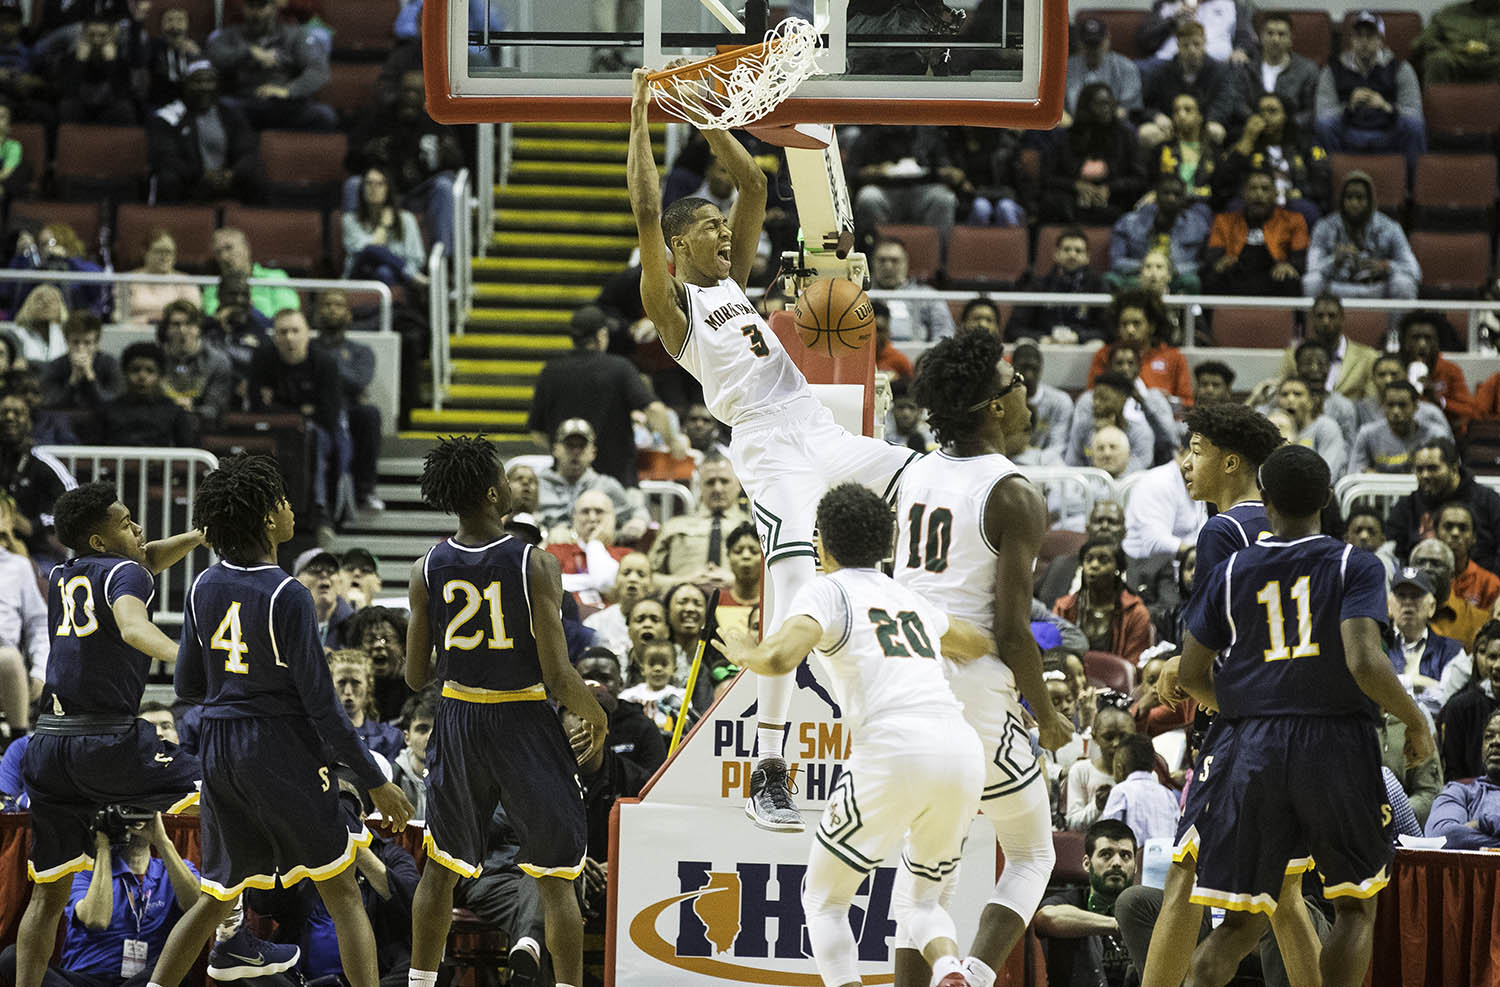 Morgan Park's Cam Burrell slams two points home against Southeast  during the 3A championship game at Carver Arena in Peoria, Ill., Saturday, March 17, 2018. [Ted Schurter/The State Journal-Register]